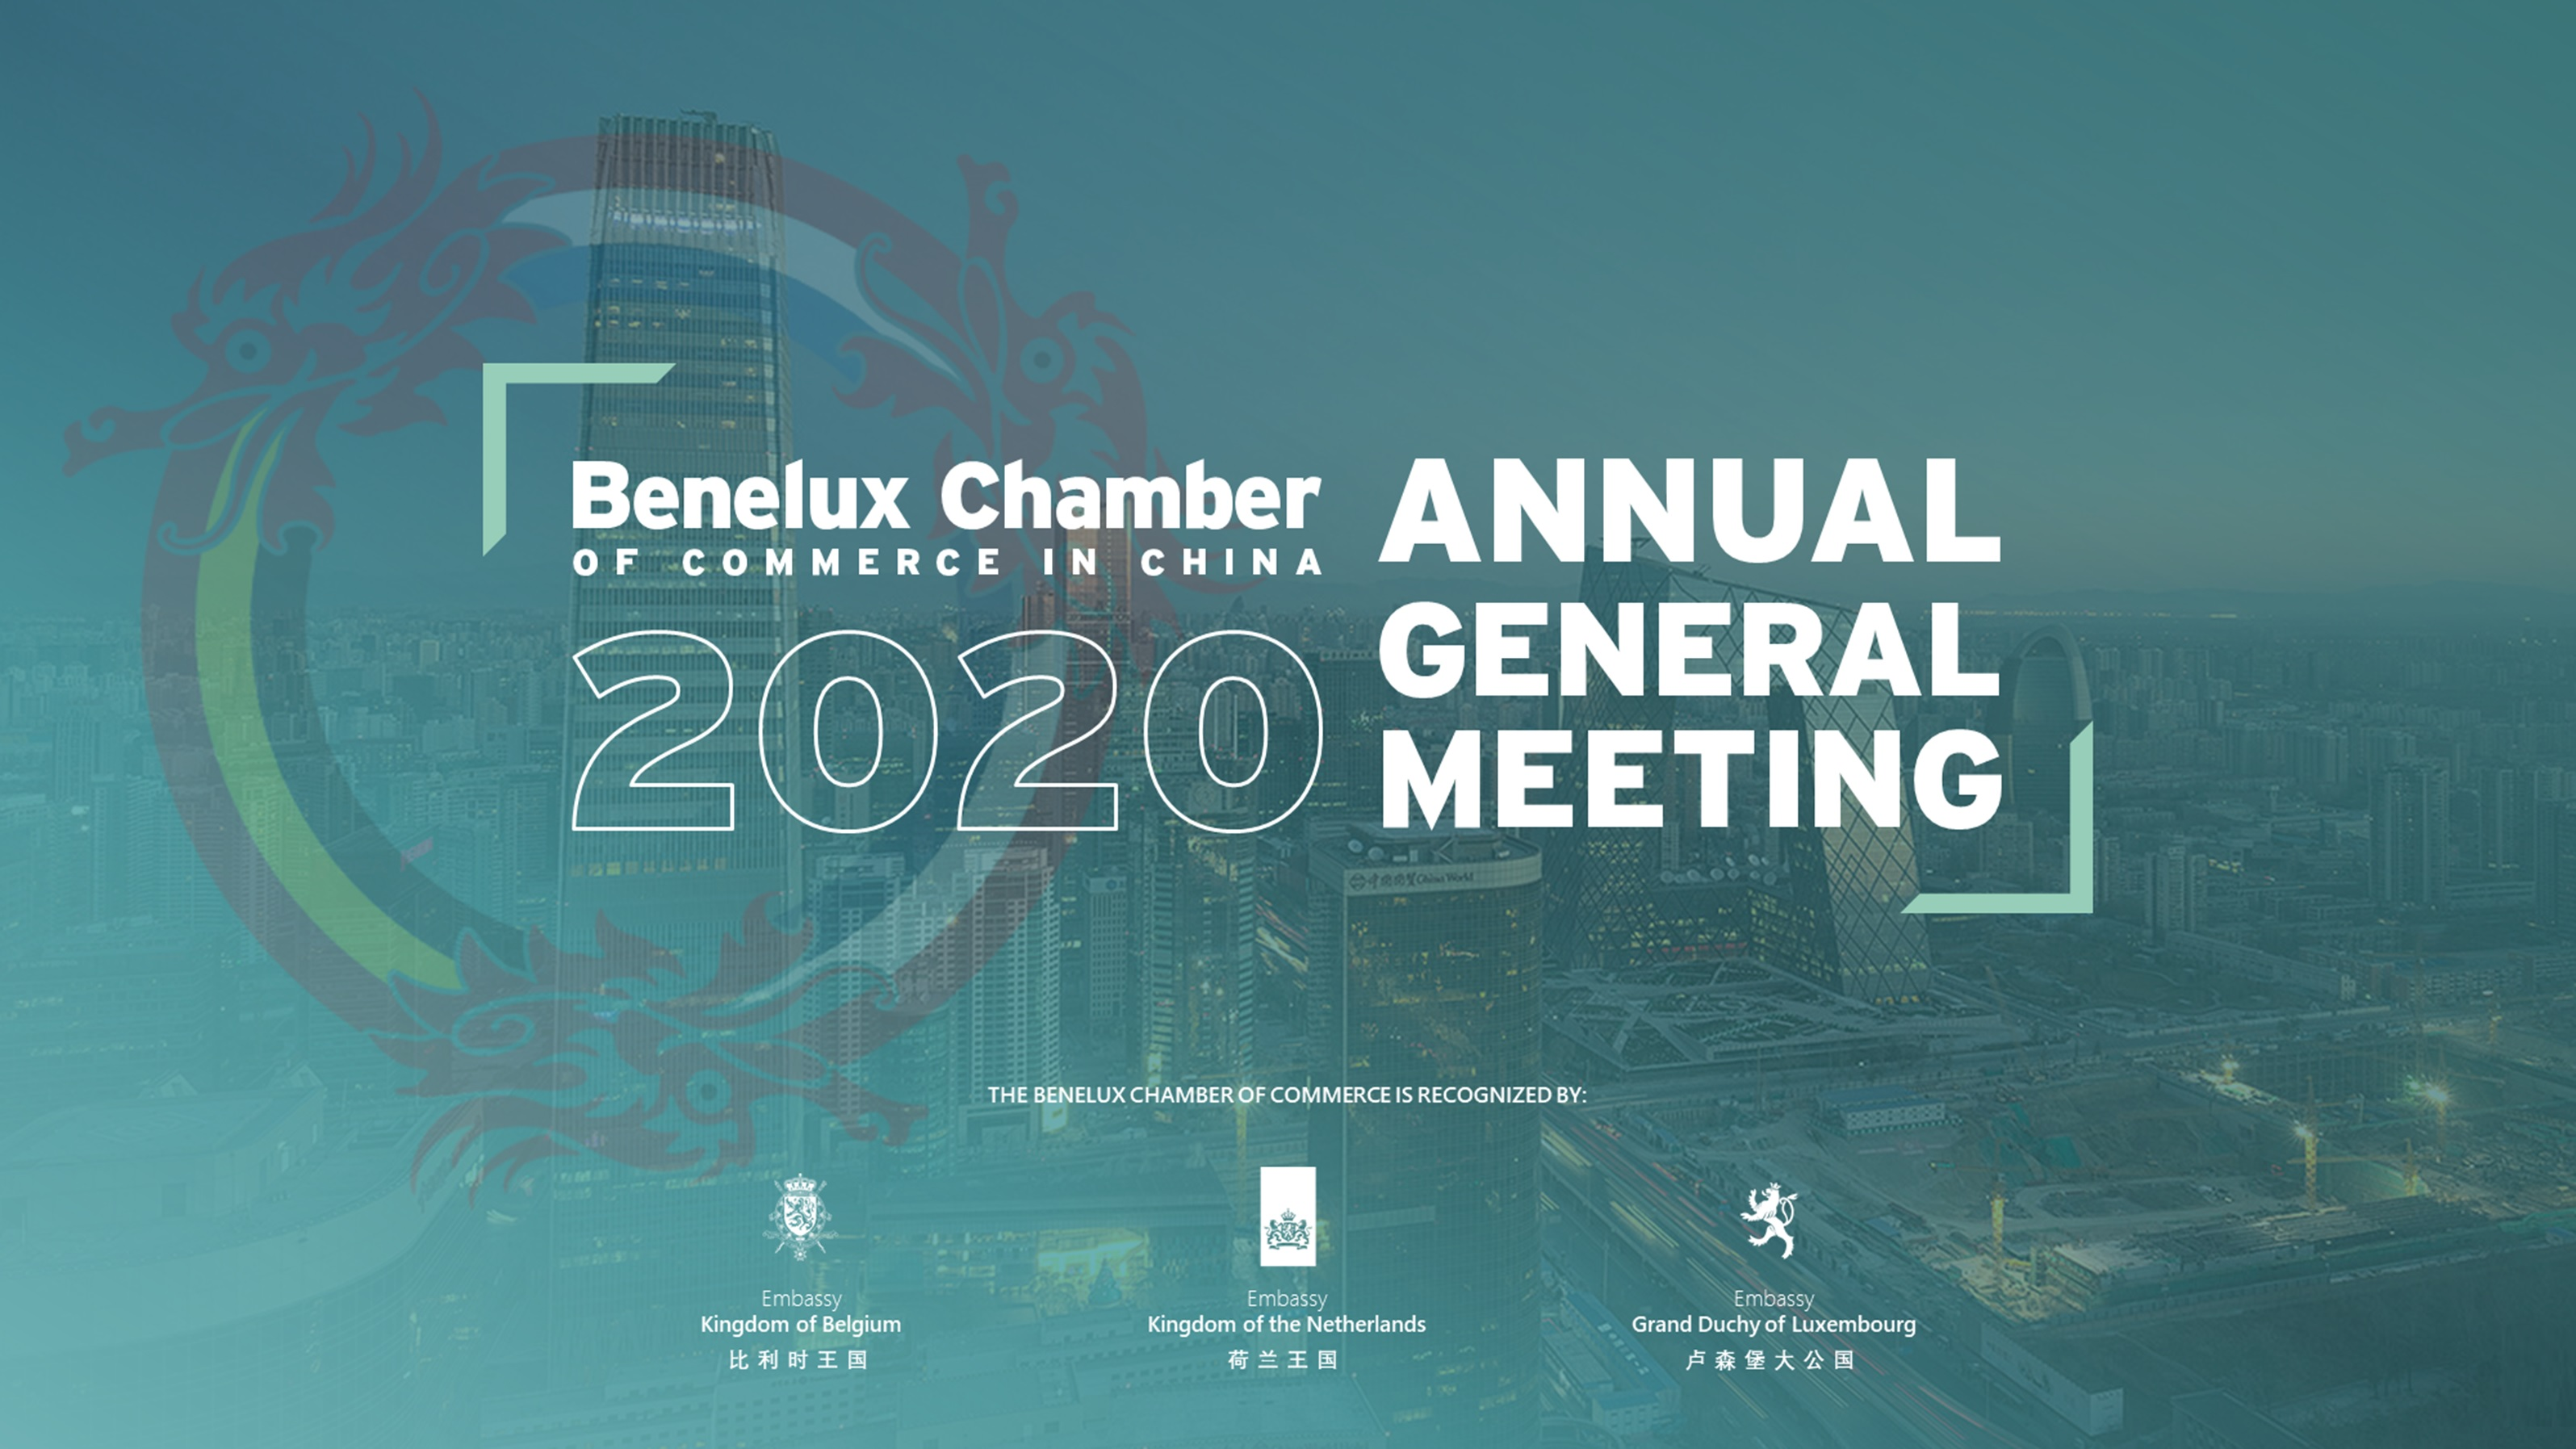 2020 Annual General Meeting | Benelux Chamber